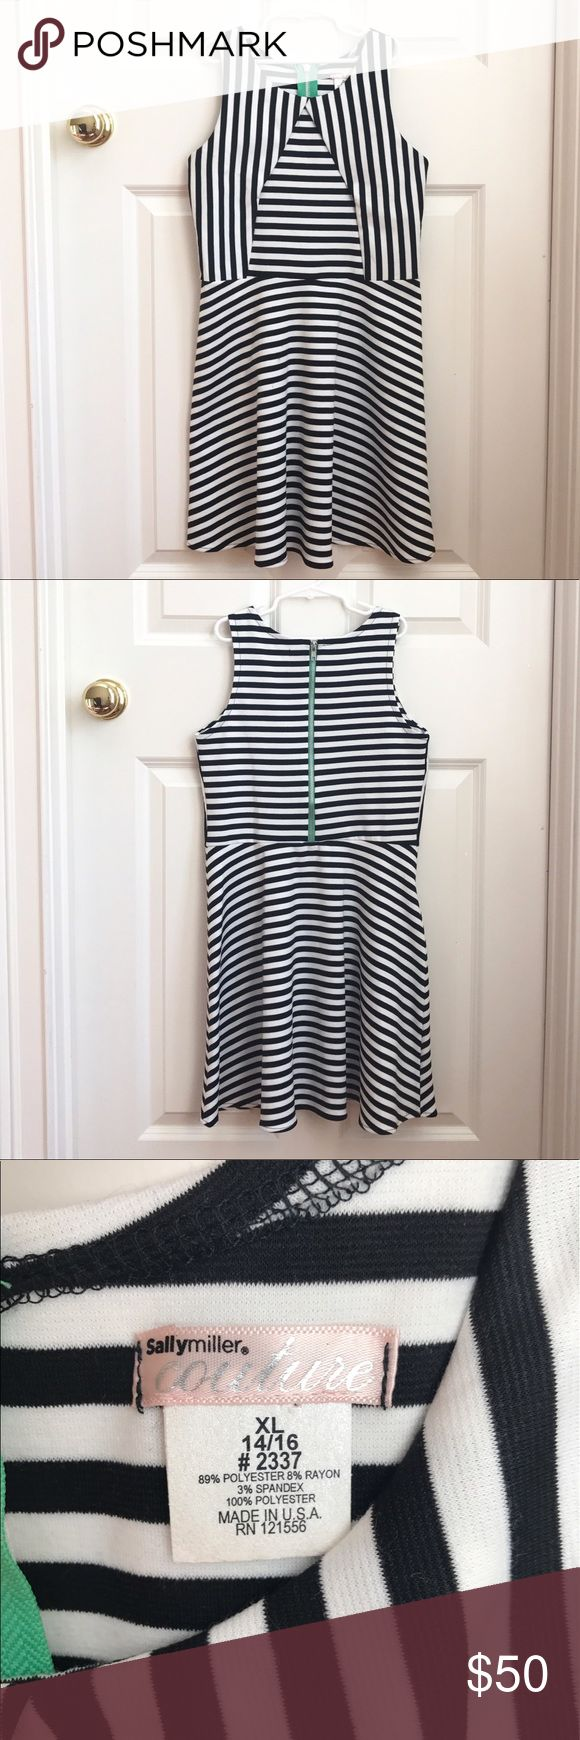 Black & White Striped Sally Miller Dress Very cute and chic black and white striped Sally Miller dress!! This dress is a girls/pre-teen size XL. I only wore it once or twice and it's still in great condition!! You can no longer find this dress in Sally Miller stores or online. Sally Miller Dresses